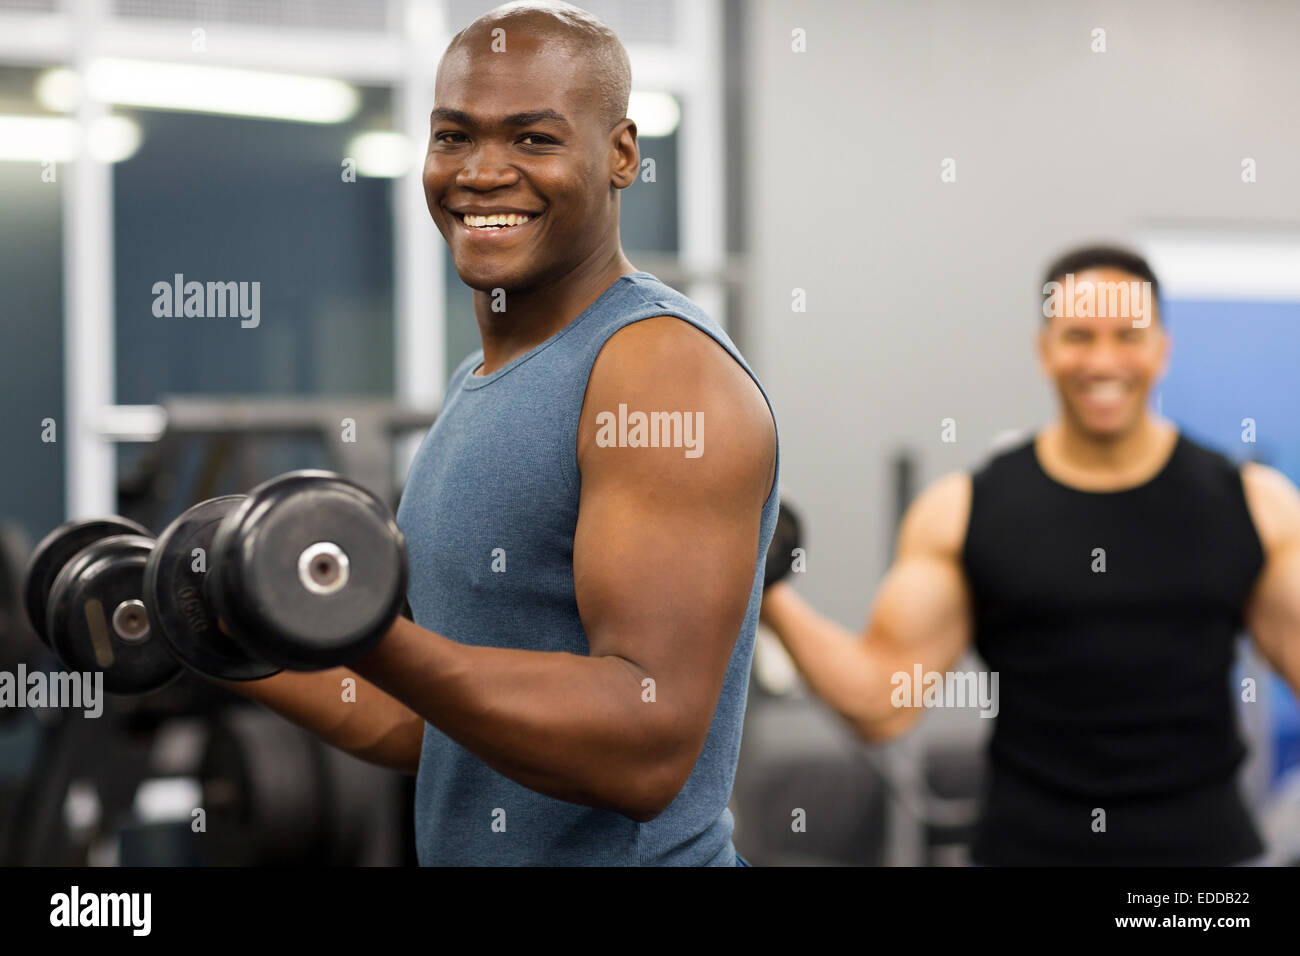 healthy African man working out with dumbbells in gym - Stock Image